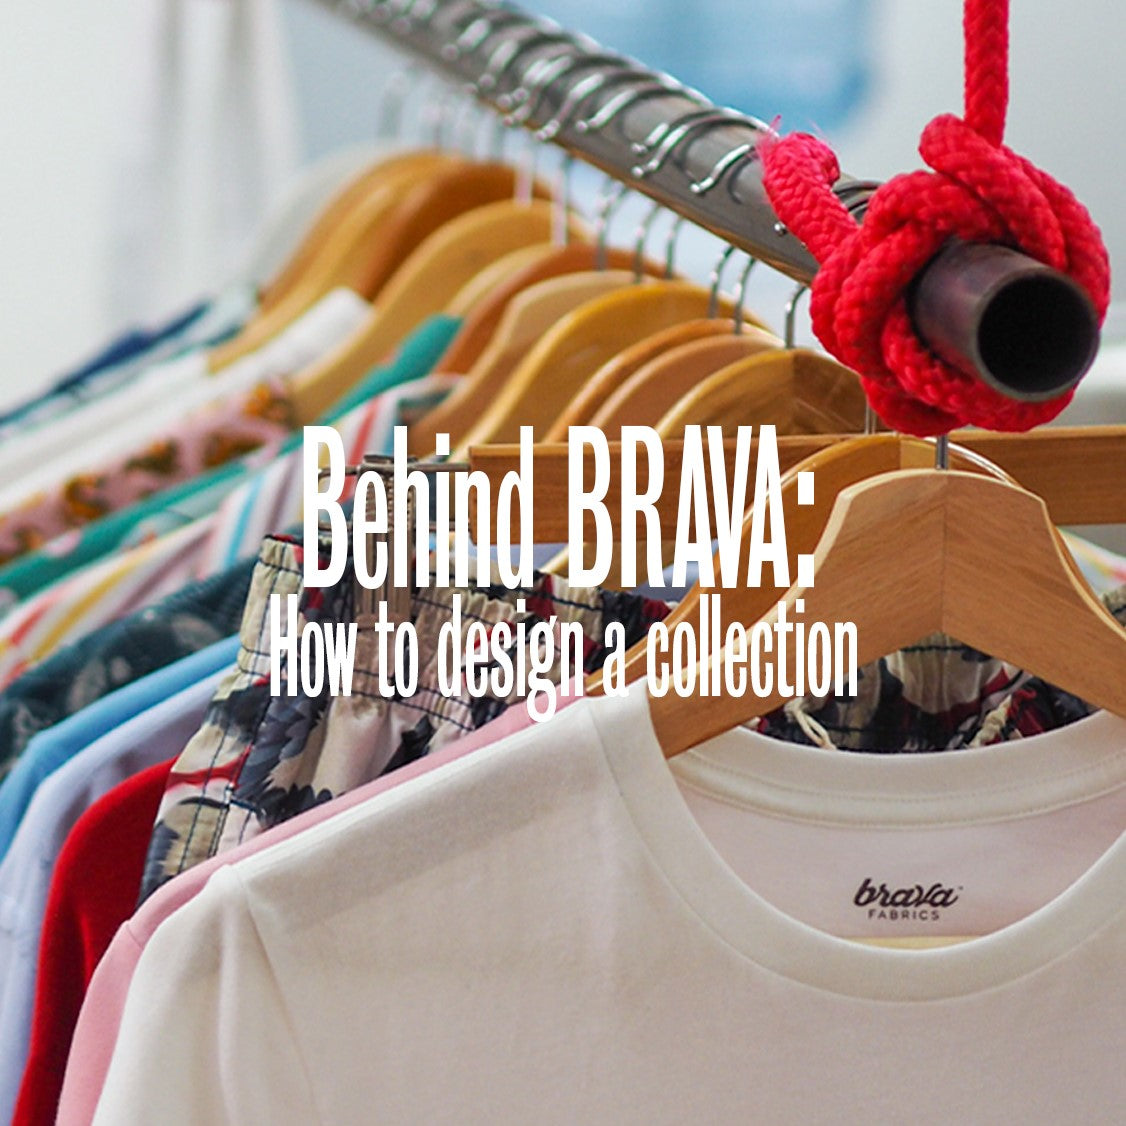 Behind Brava: How to create a new collection